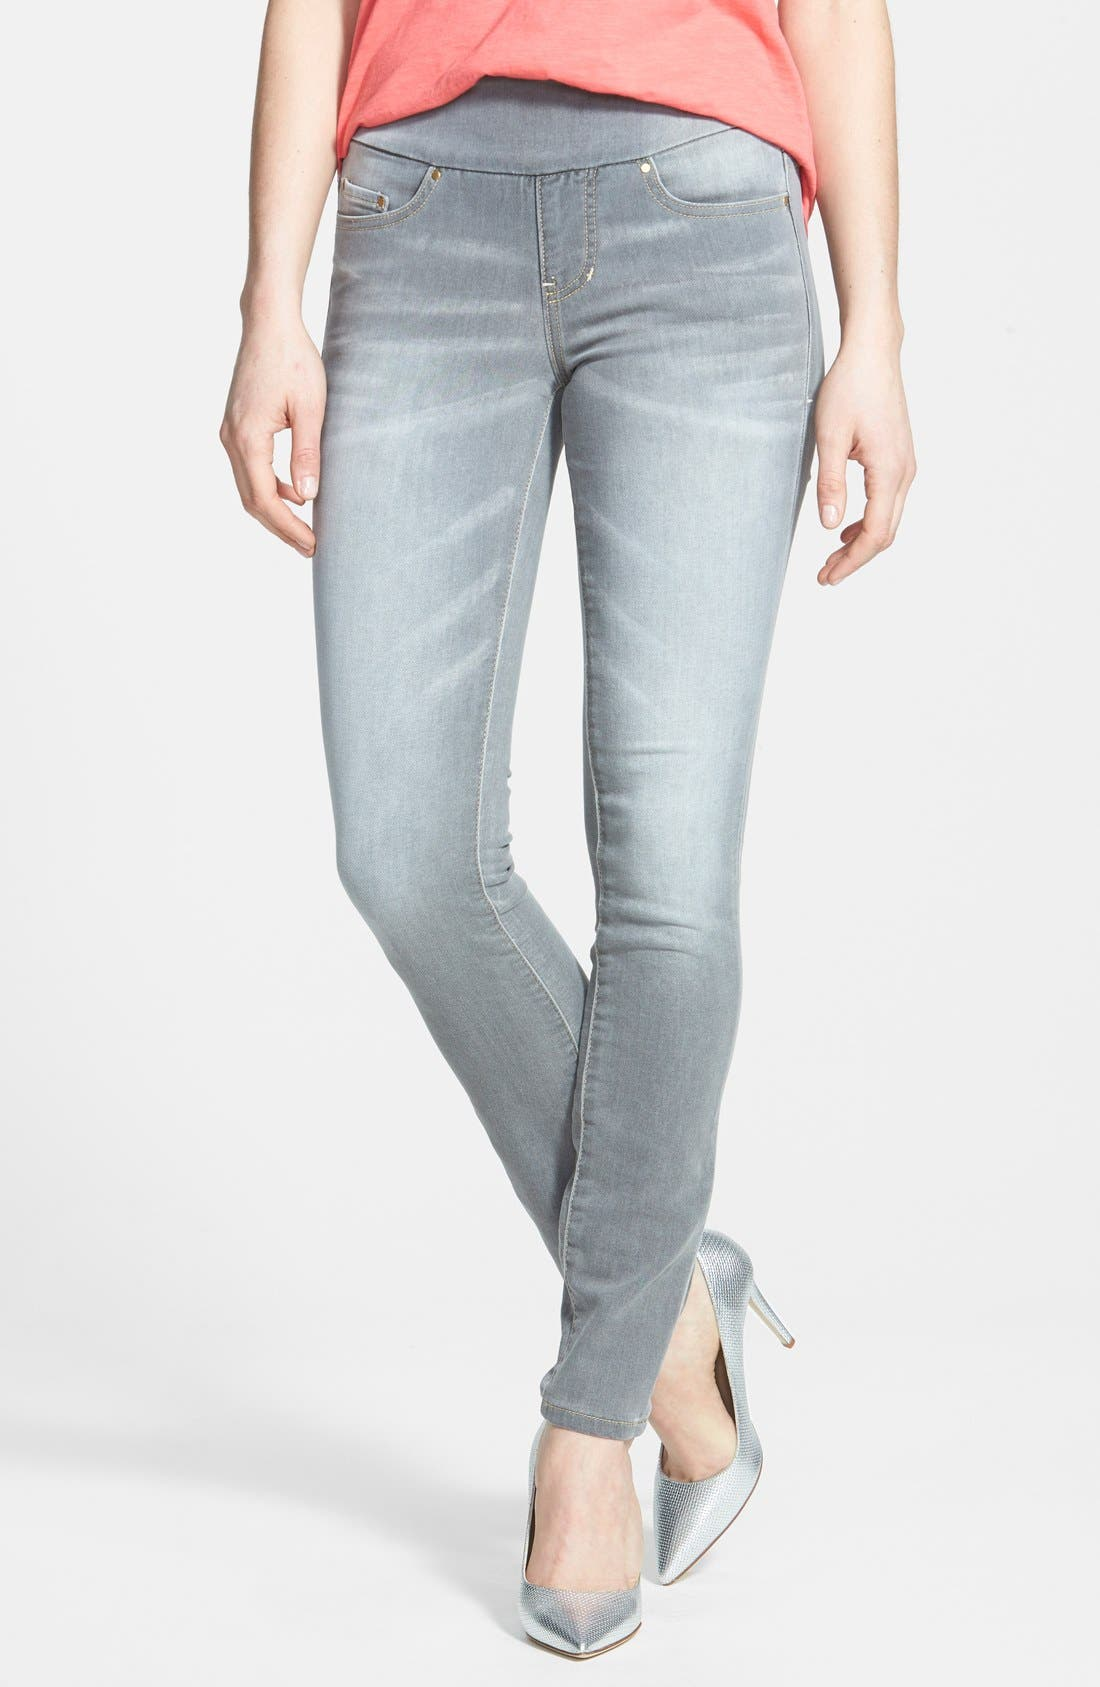 Main Image - Jag Jeans 'Nora' Pull-On Stretch Knit Skinny Jeans (Antique Tint)